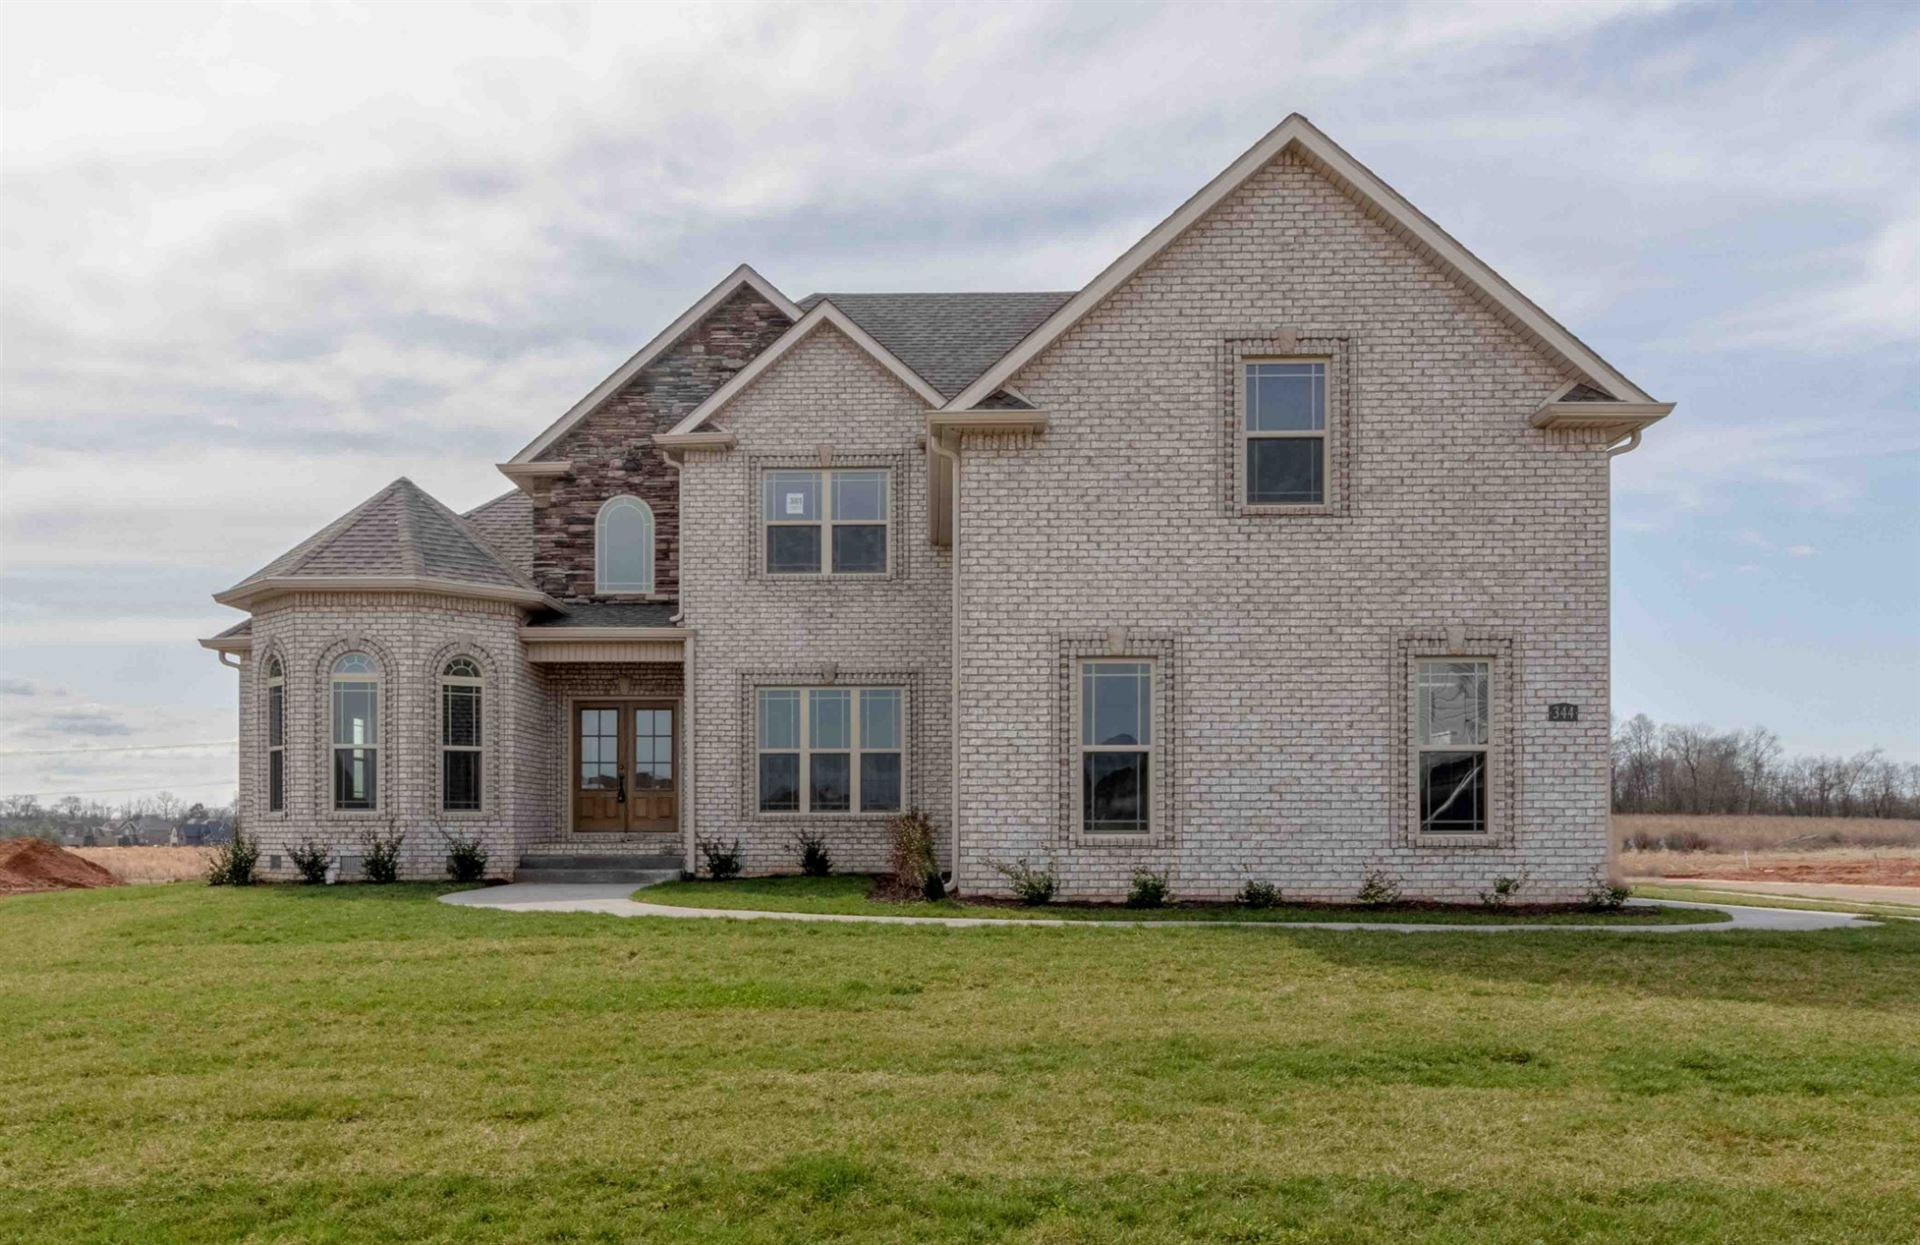 361 Wellington Fields, Clarksville, TN 37043 - MLS#: 2199034